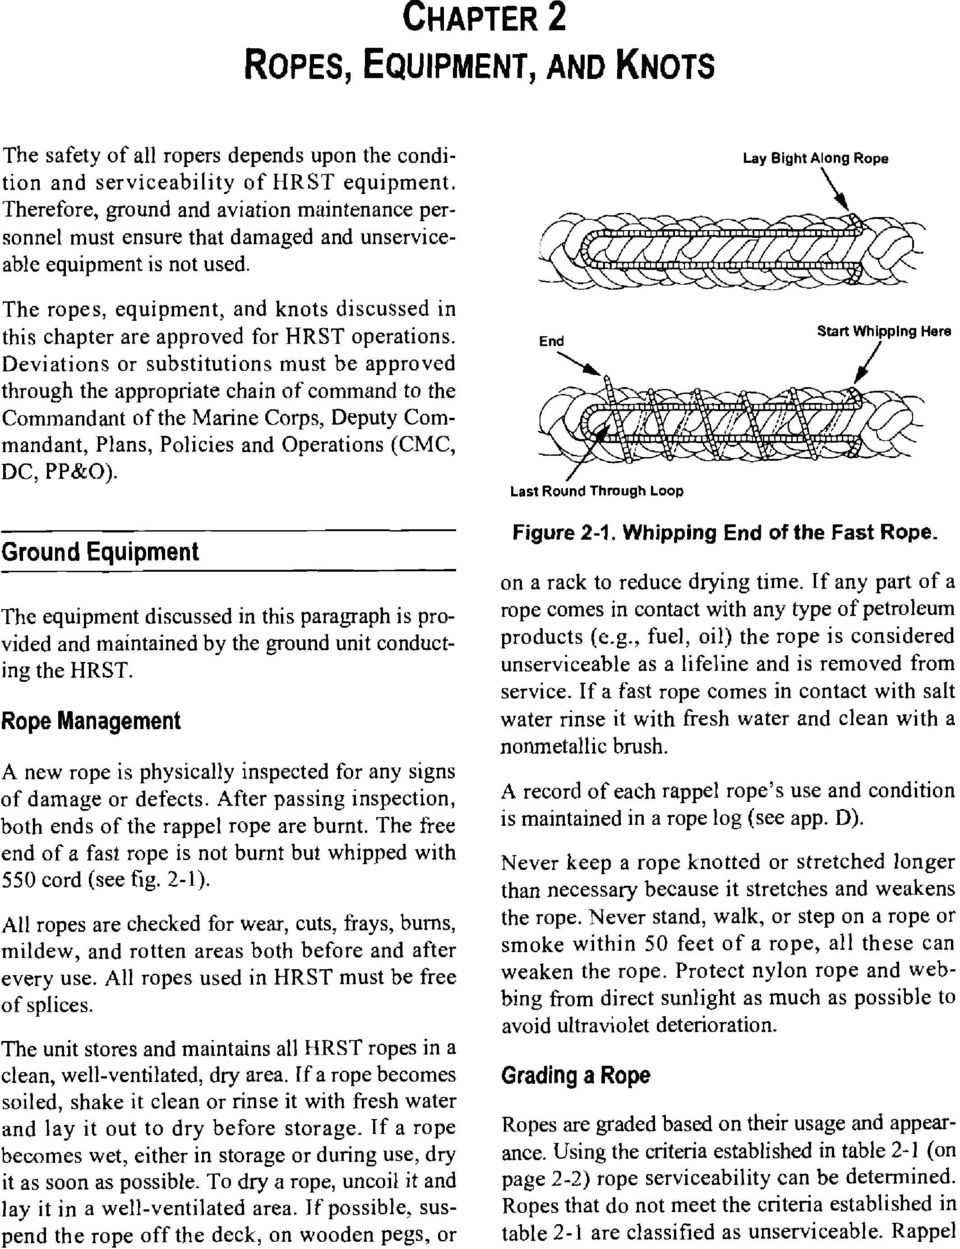 Helicoptie r Rope Suspension Techniques (HRST) Operations - PDF